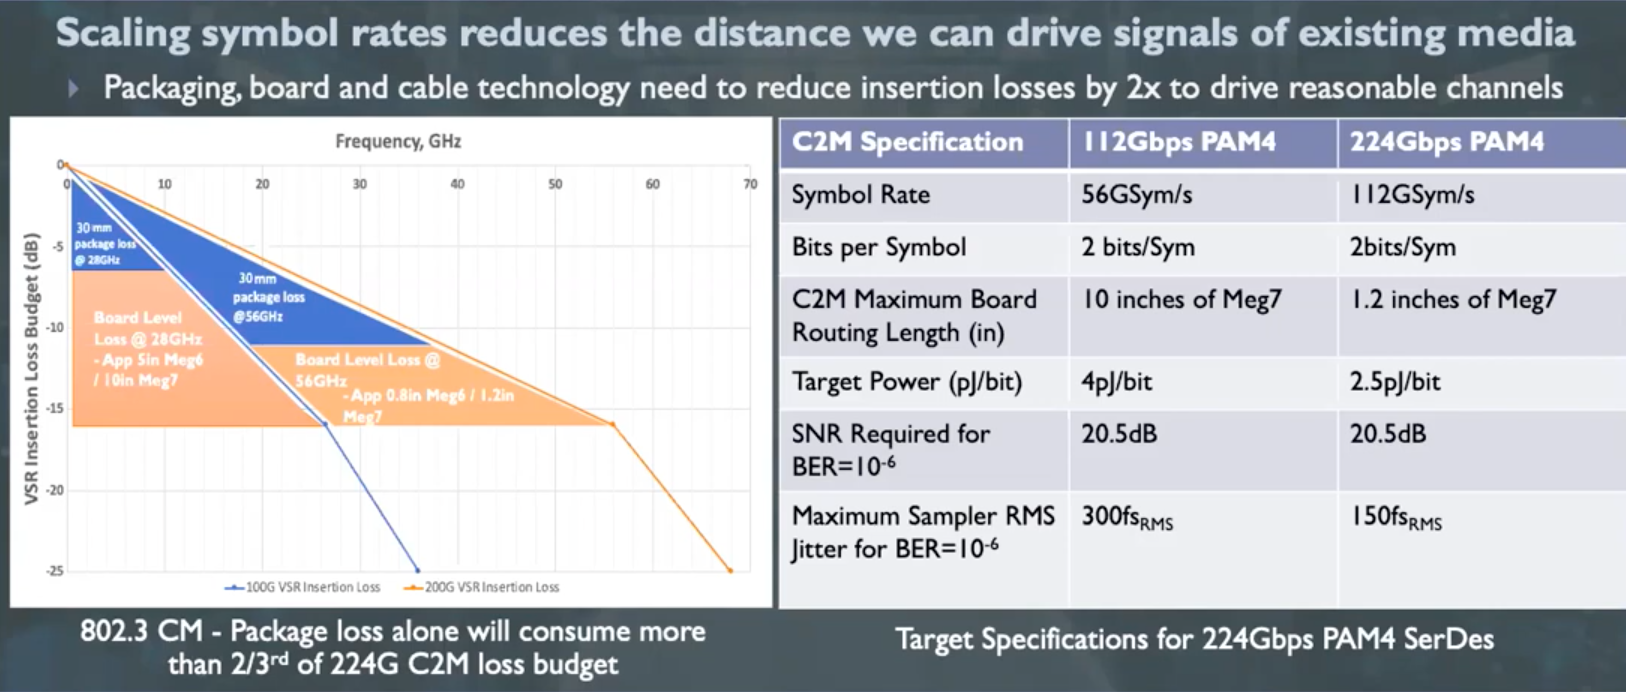 Scaling Symbol Rates to 224Gbps